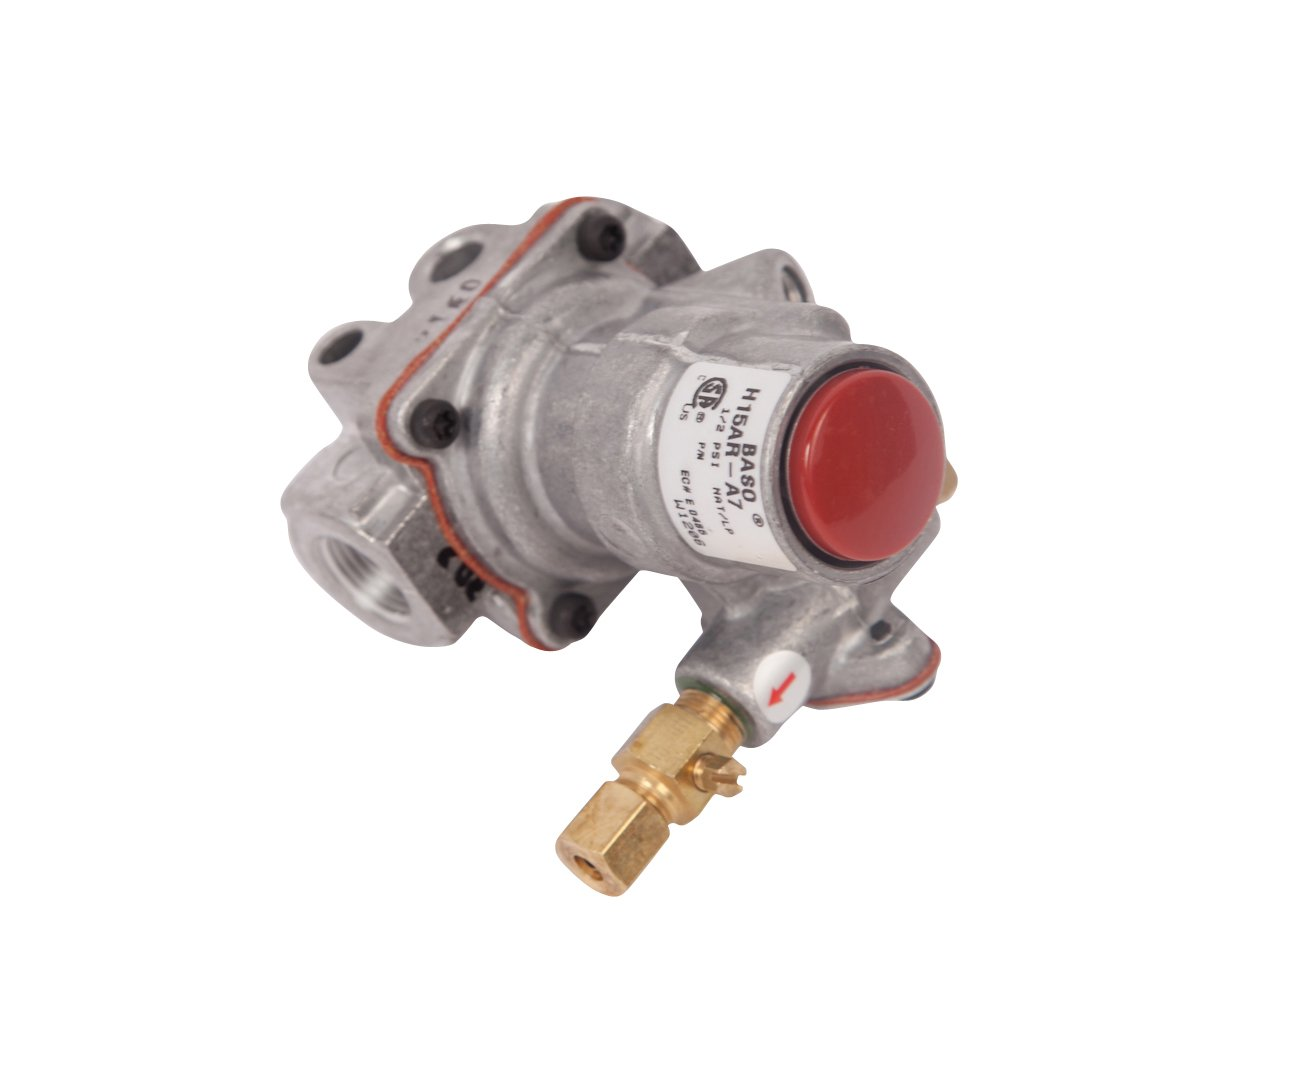 Tri-Star Manufacturing 311011 Oven and Range Safety Valve